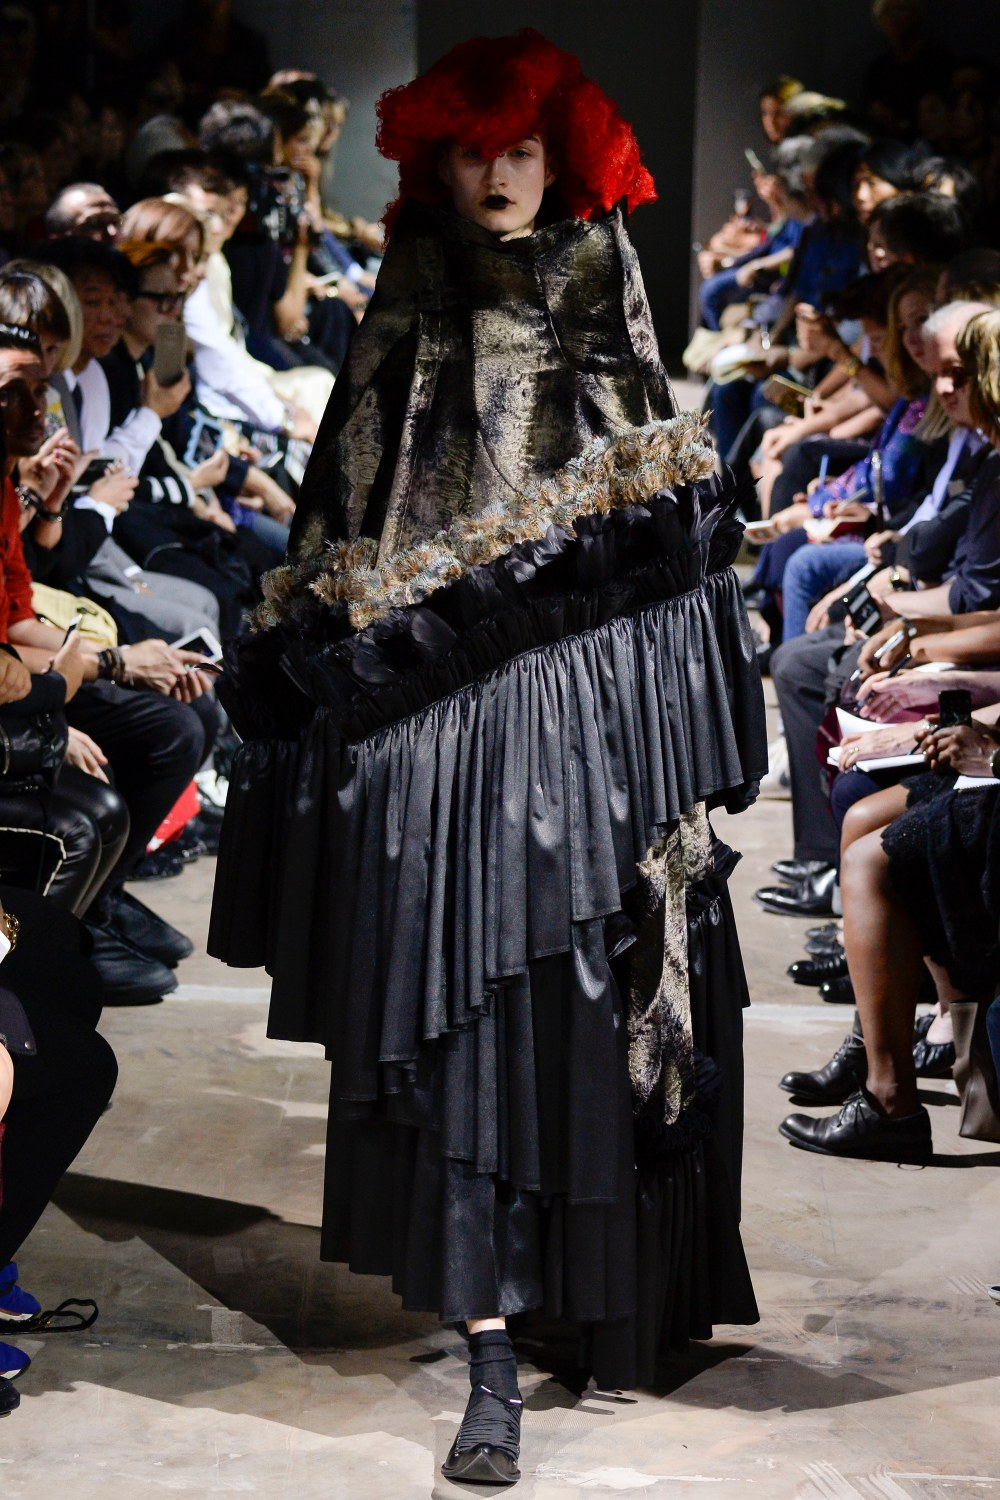 SPRING 2016 READY-TO-WEAR